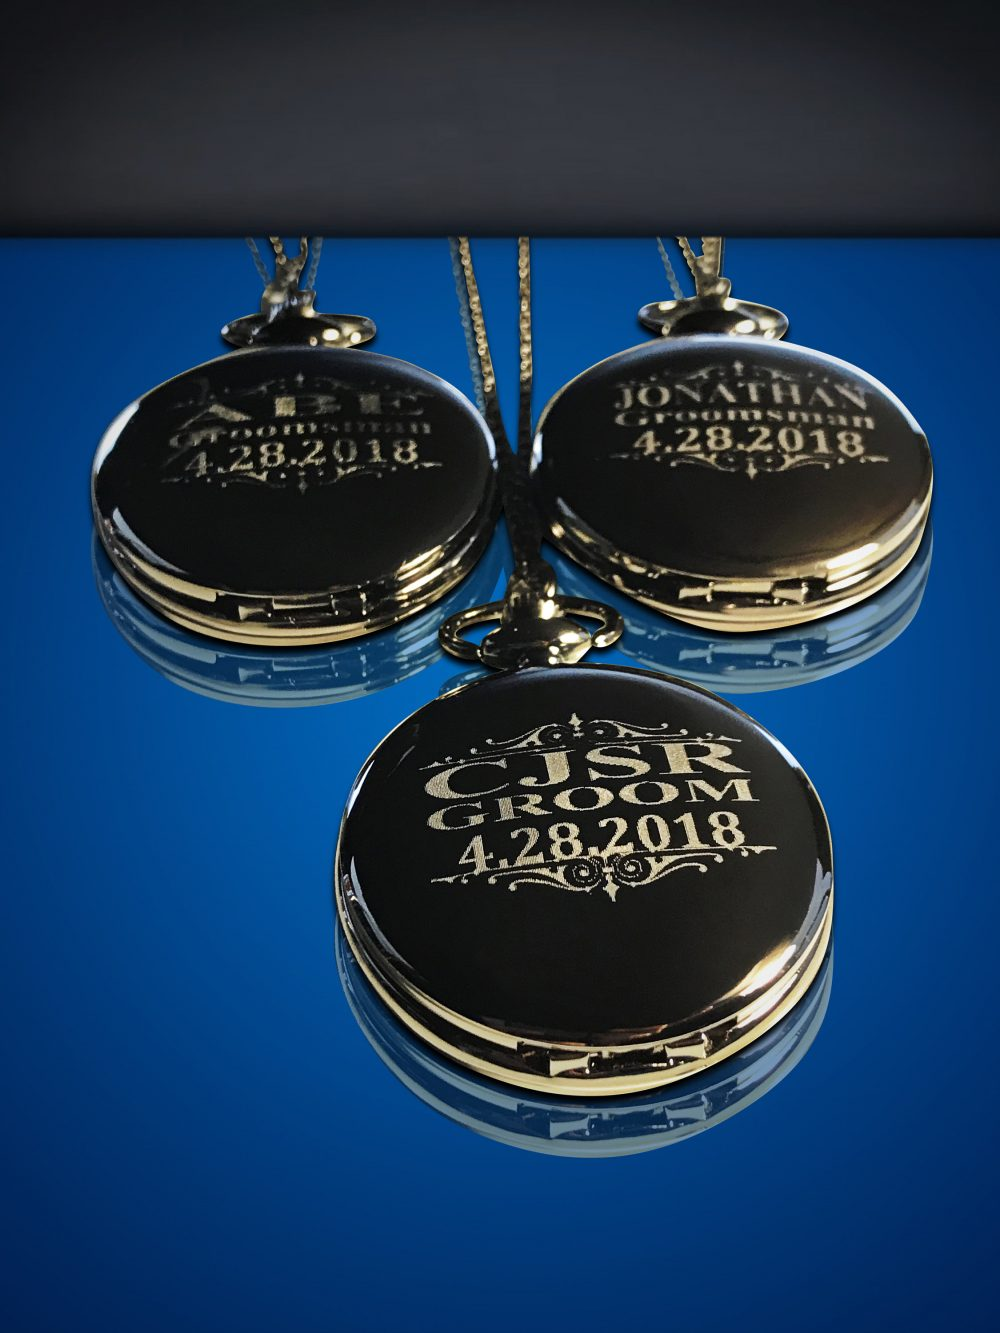 Personalized Groomsmen Gift - 3 Engraved Pocket Watch Black/Gunmetal in Box Engraved Wedding